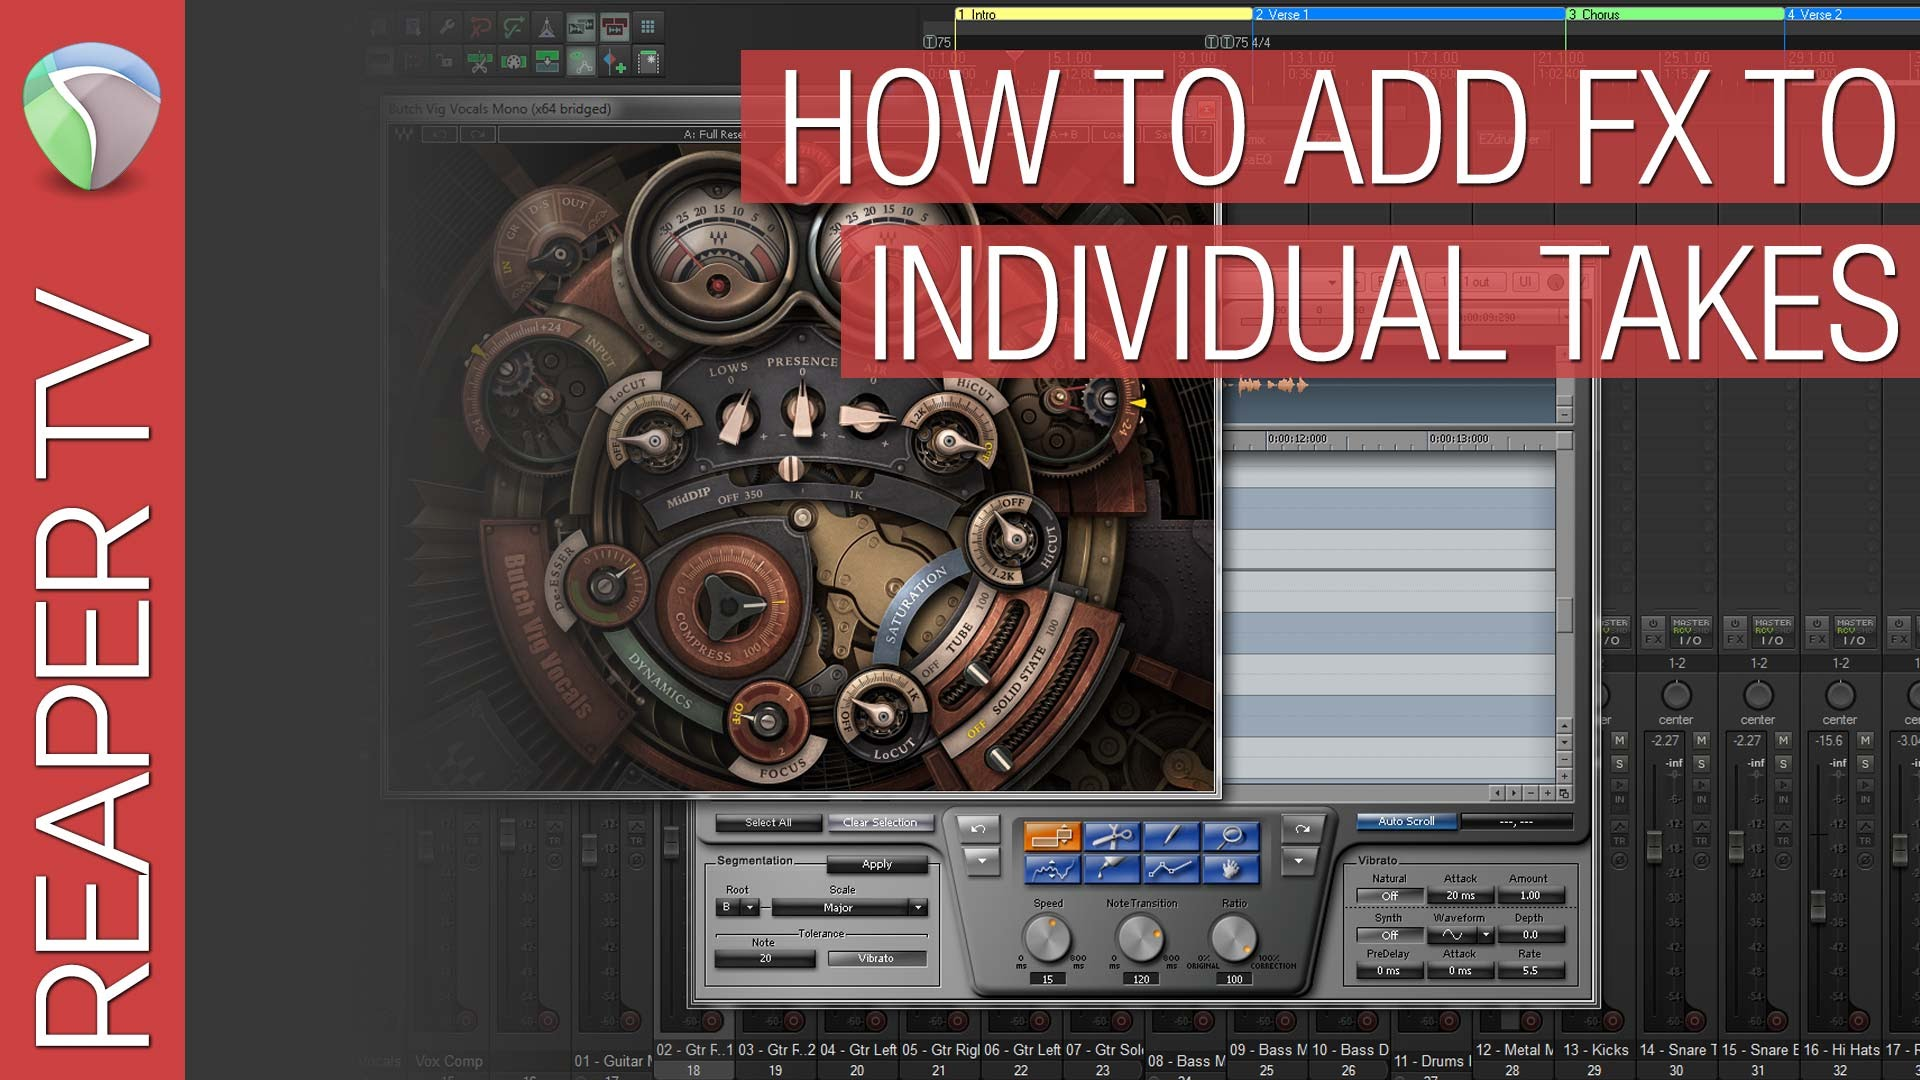 How to Add FX To Individual Takes in Reaper DAW